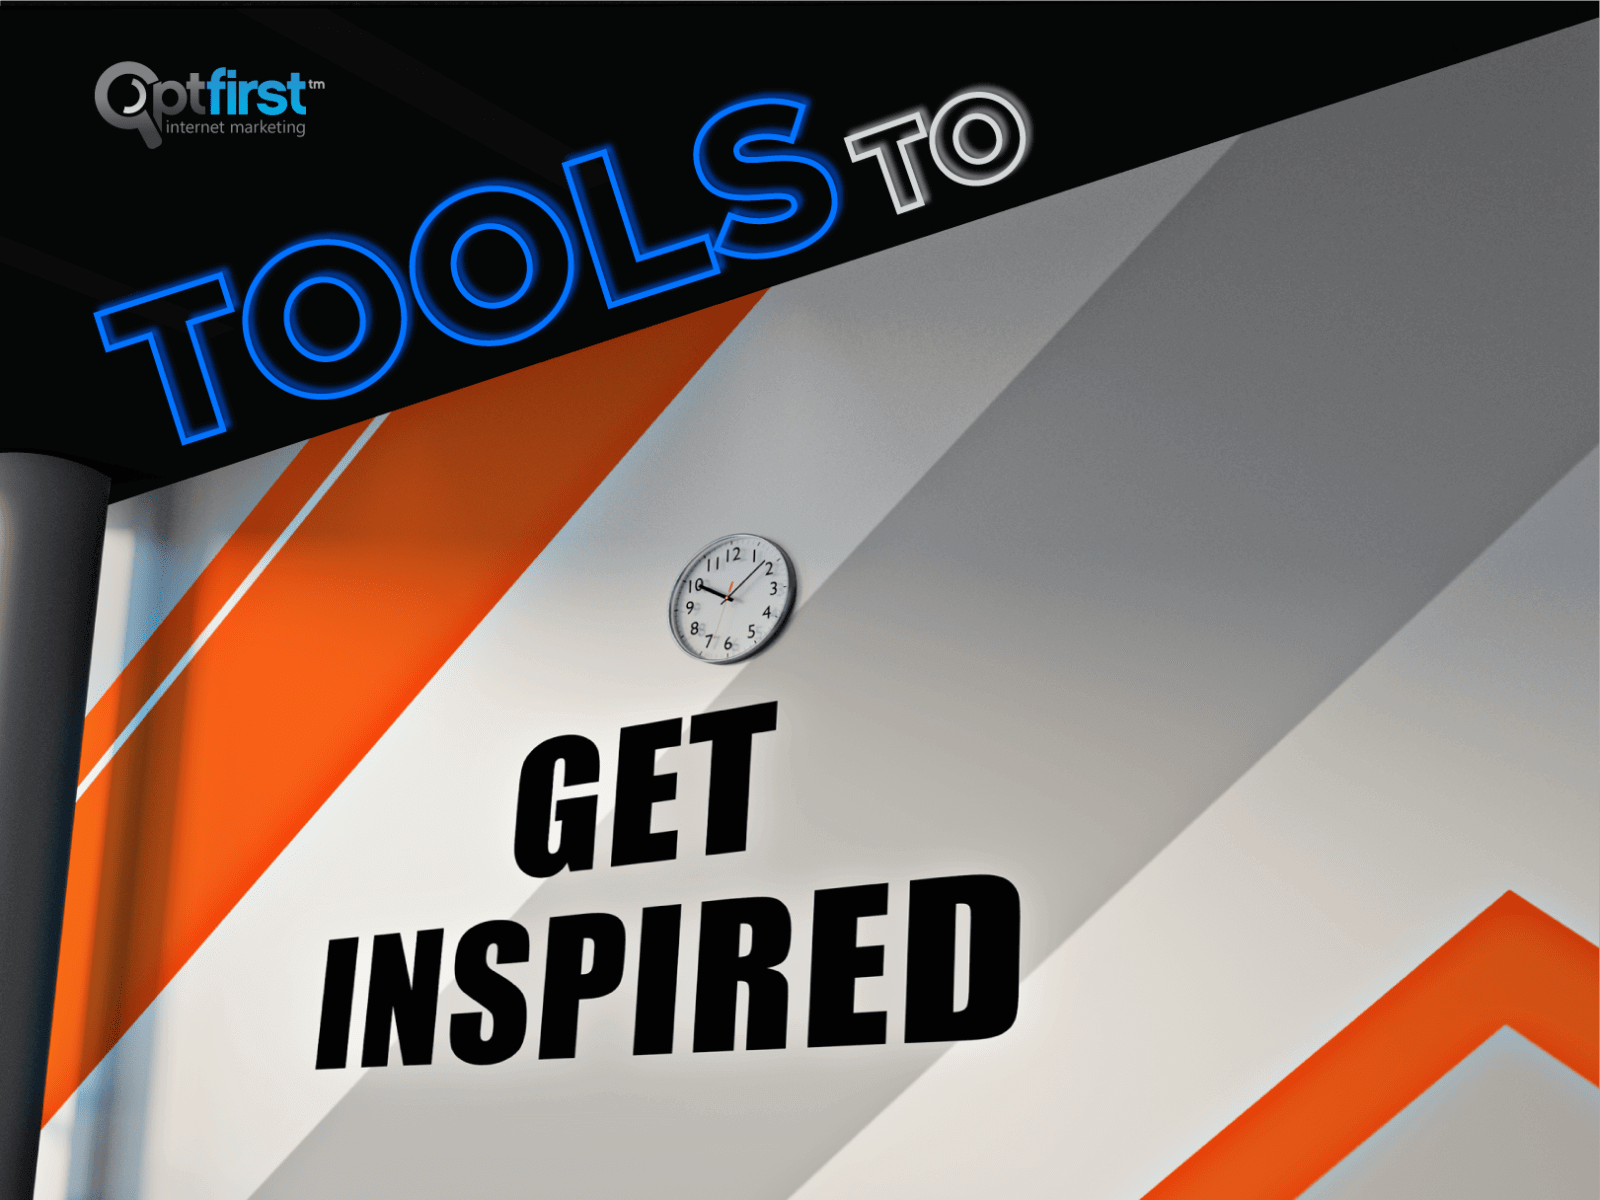 TOOLS TO GET INSPIRED